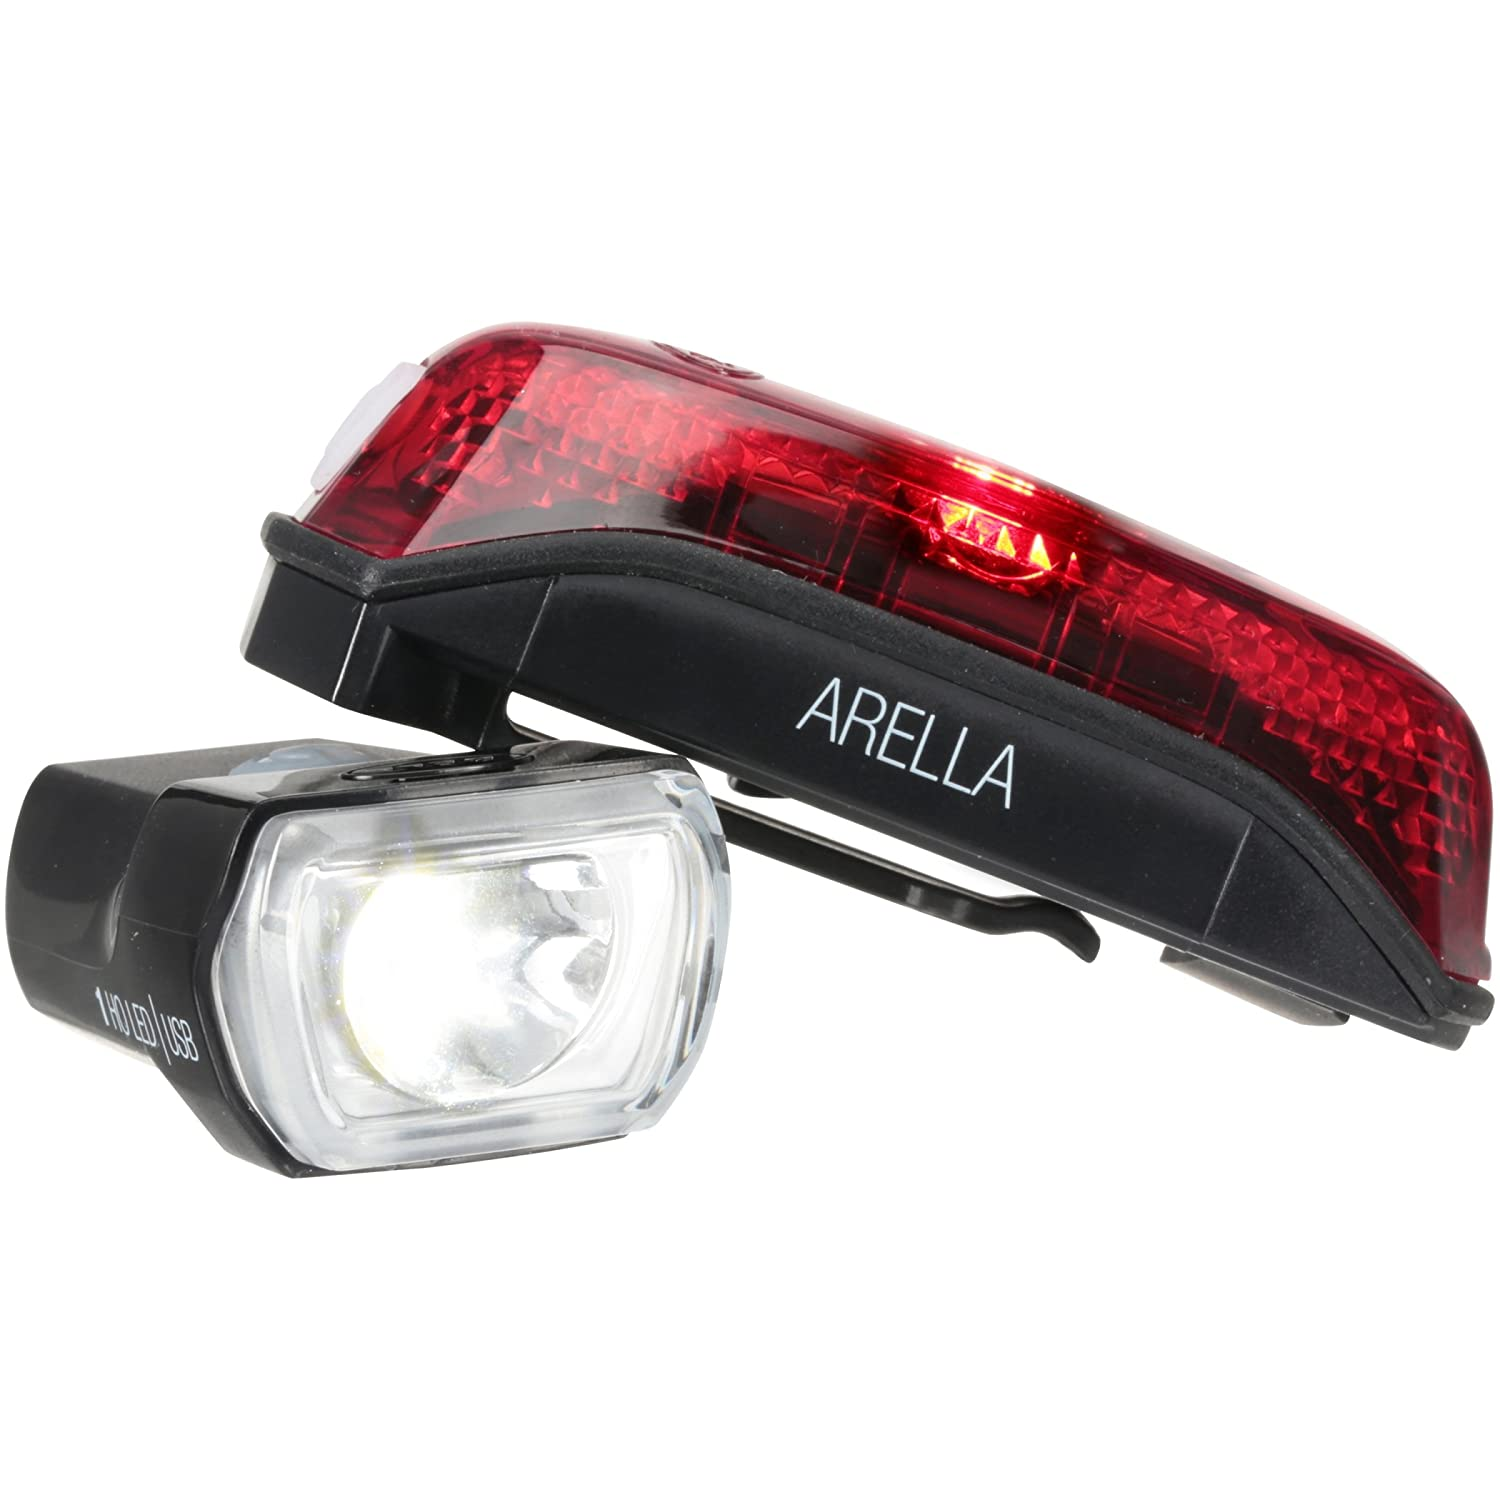 Amazon Bell 7052905 Arella Tail Light Sports Outdoors